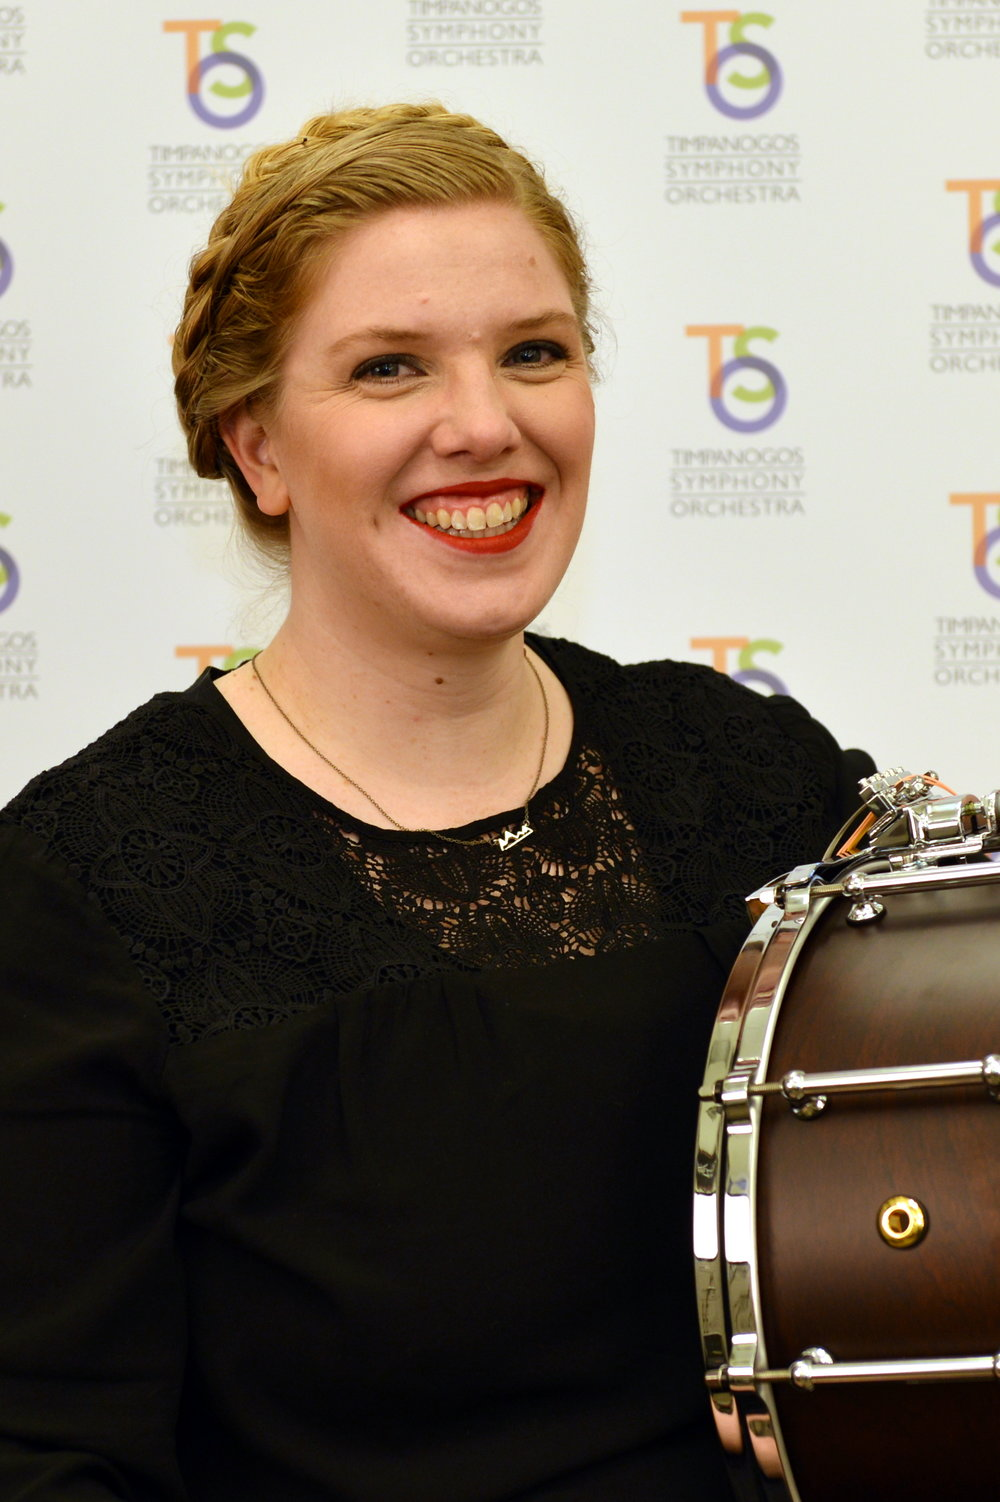 Kelli Stowers, Section Leader